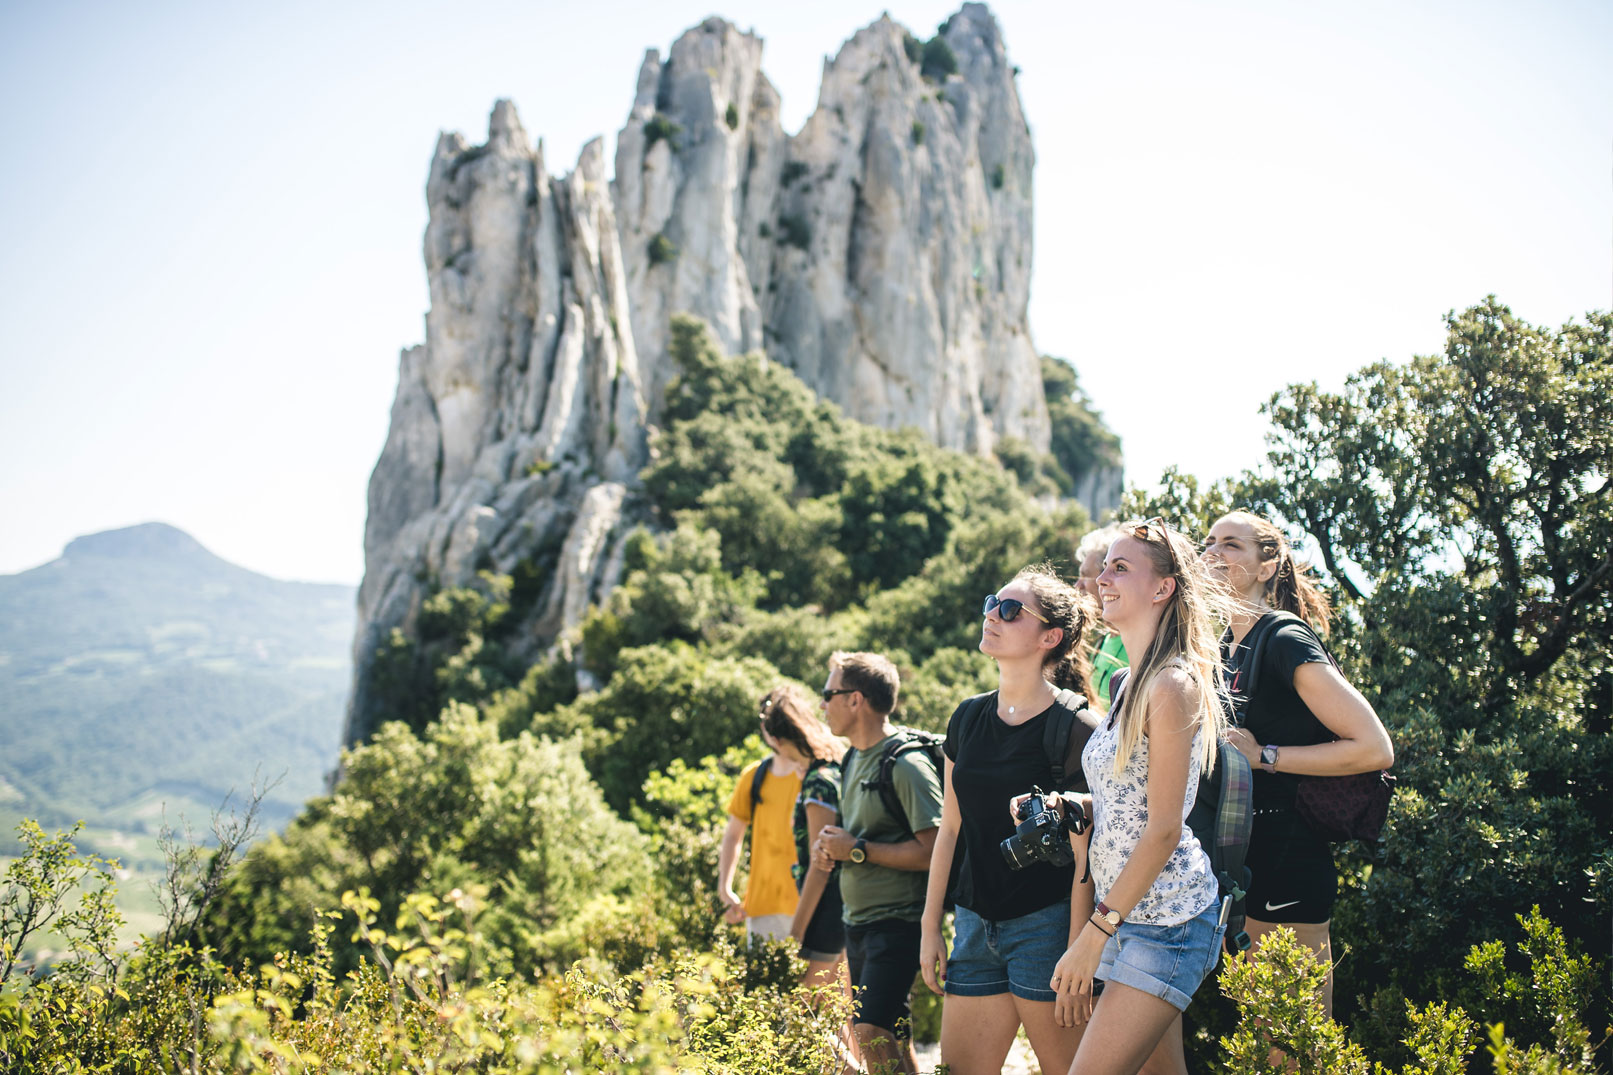 Hike in the Dentelles de Montmirail